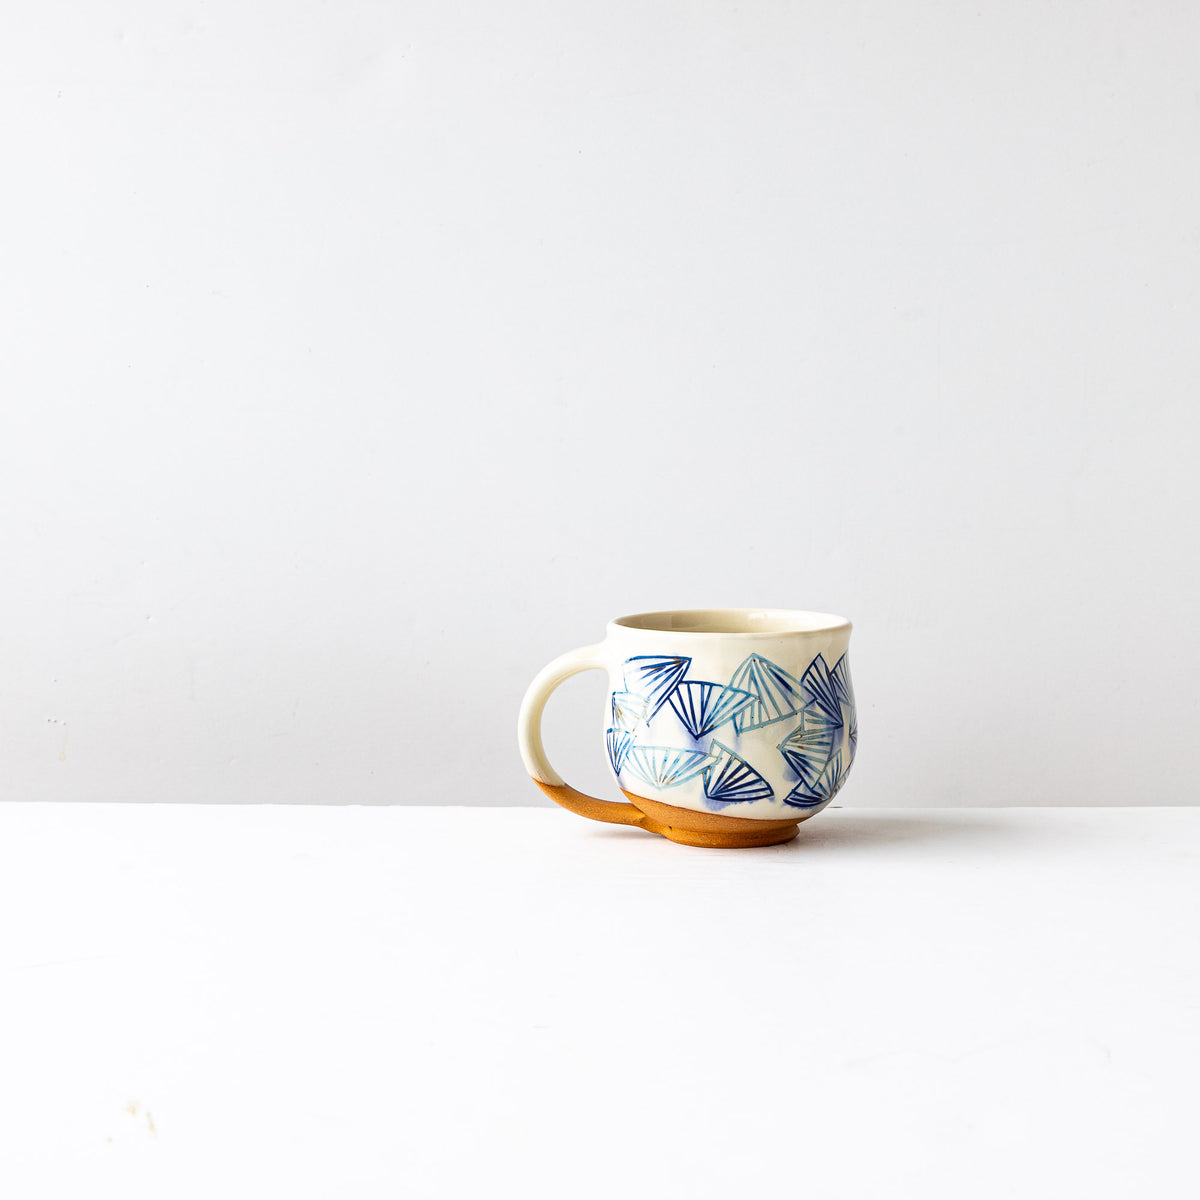 Blue Pattern - Handmade Mishima Round Mug With Folding Fan Pattern - Sold by Chic & Basta